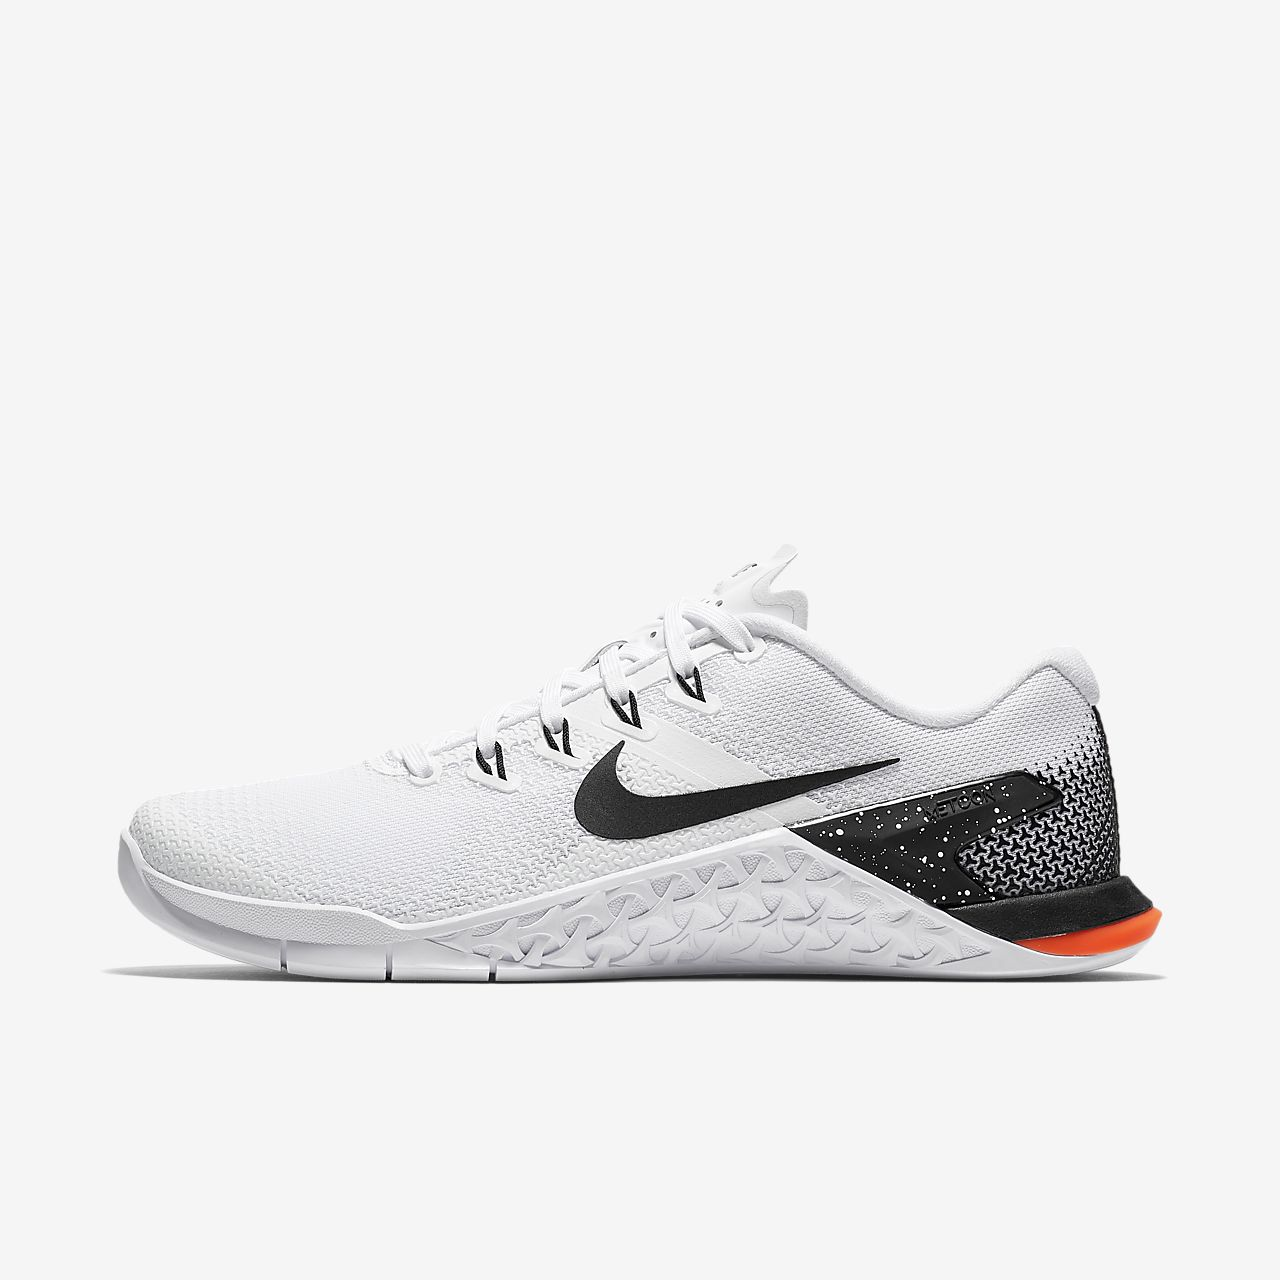 popular nike shoes camo white crosses 892533